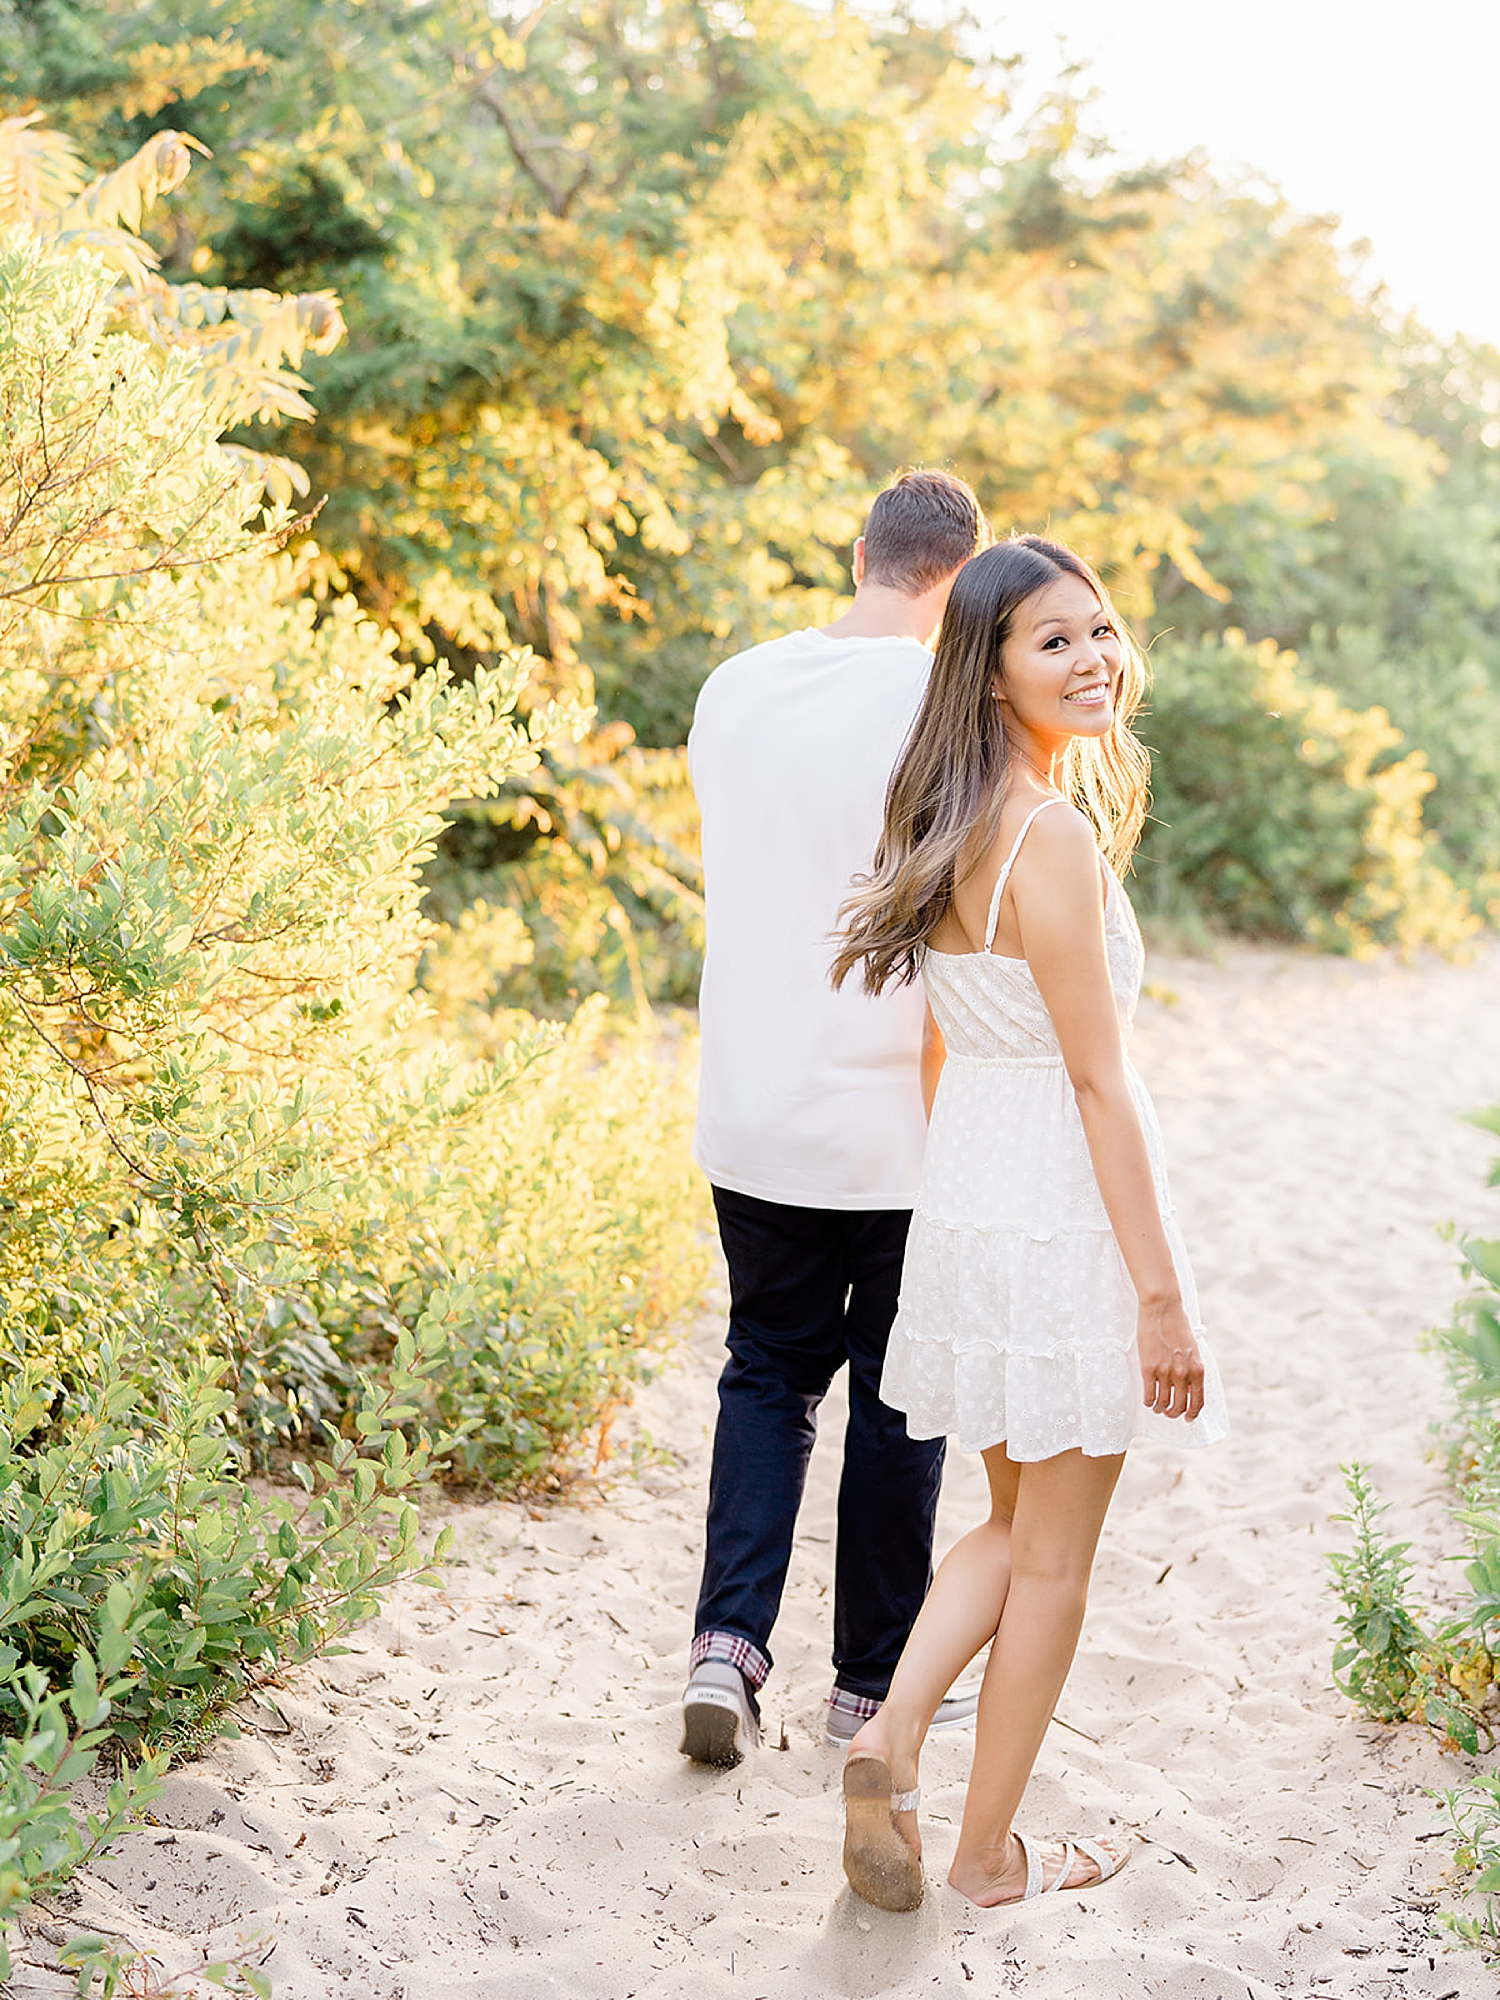 Willow Creek Winery New Jersey Engagement Photography by Magdalena Studios 0017